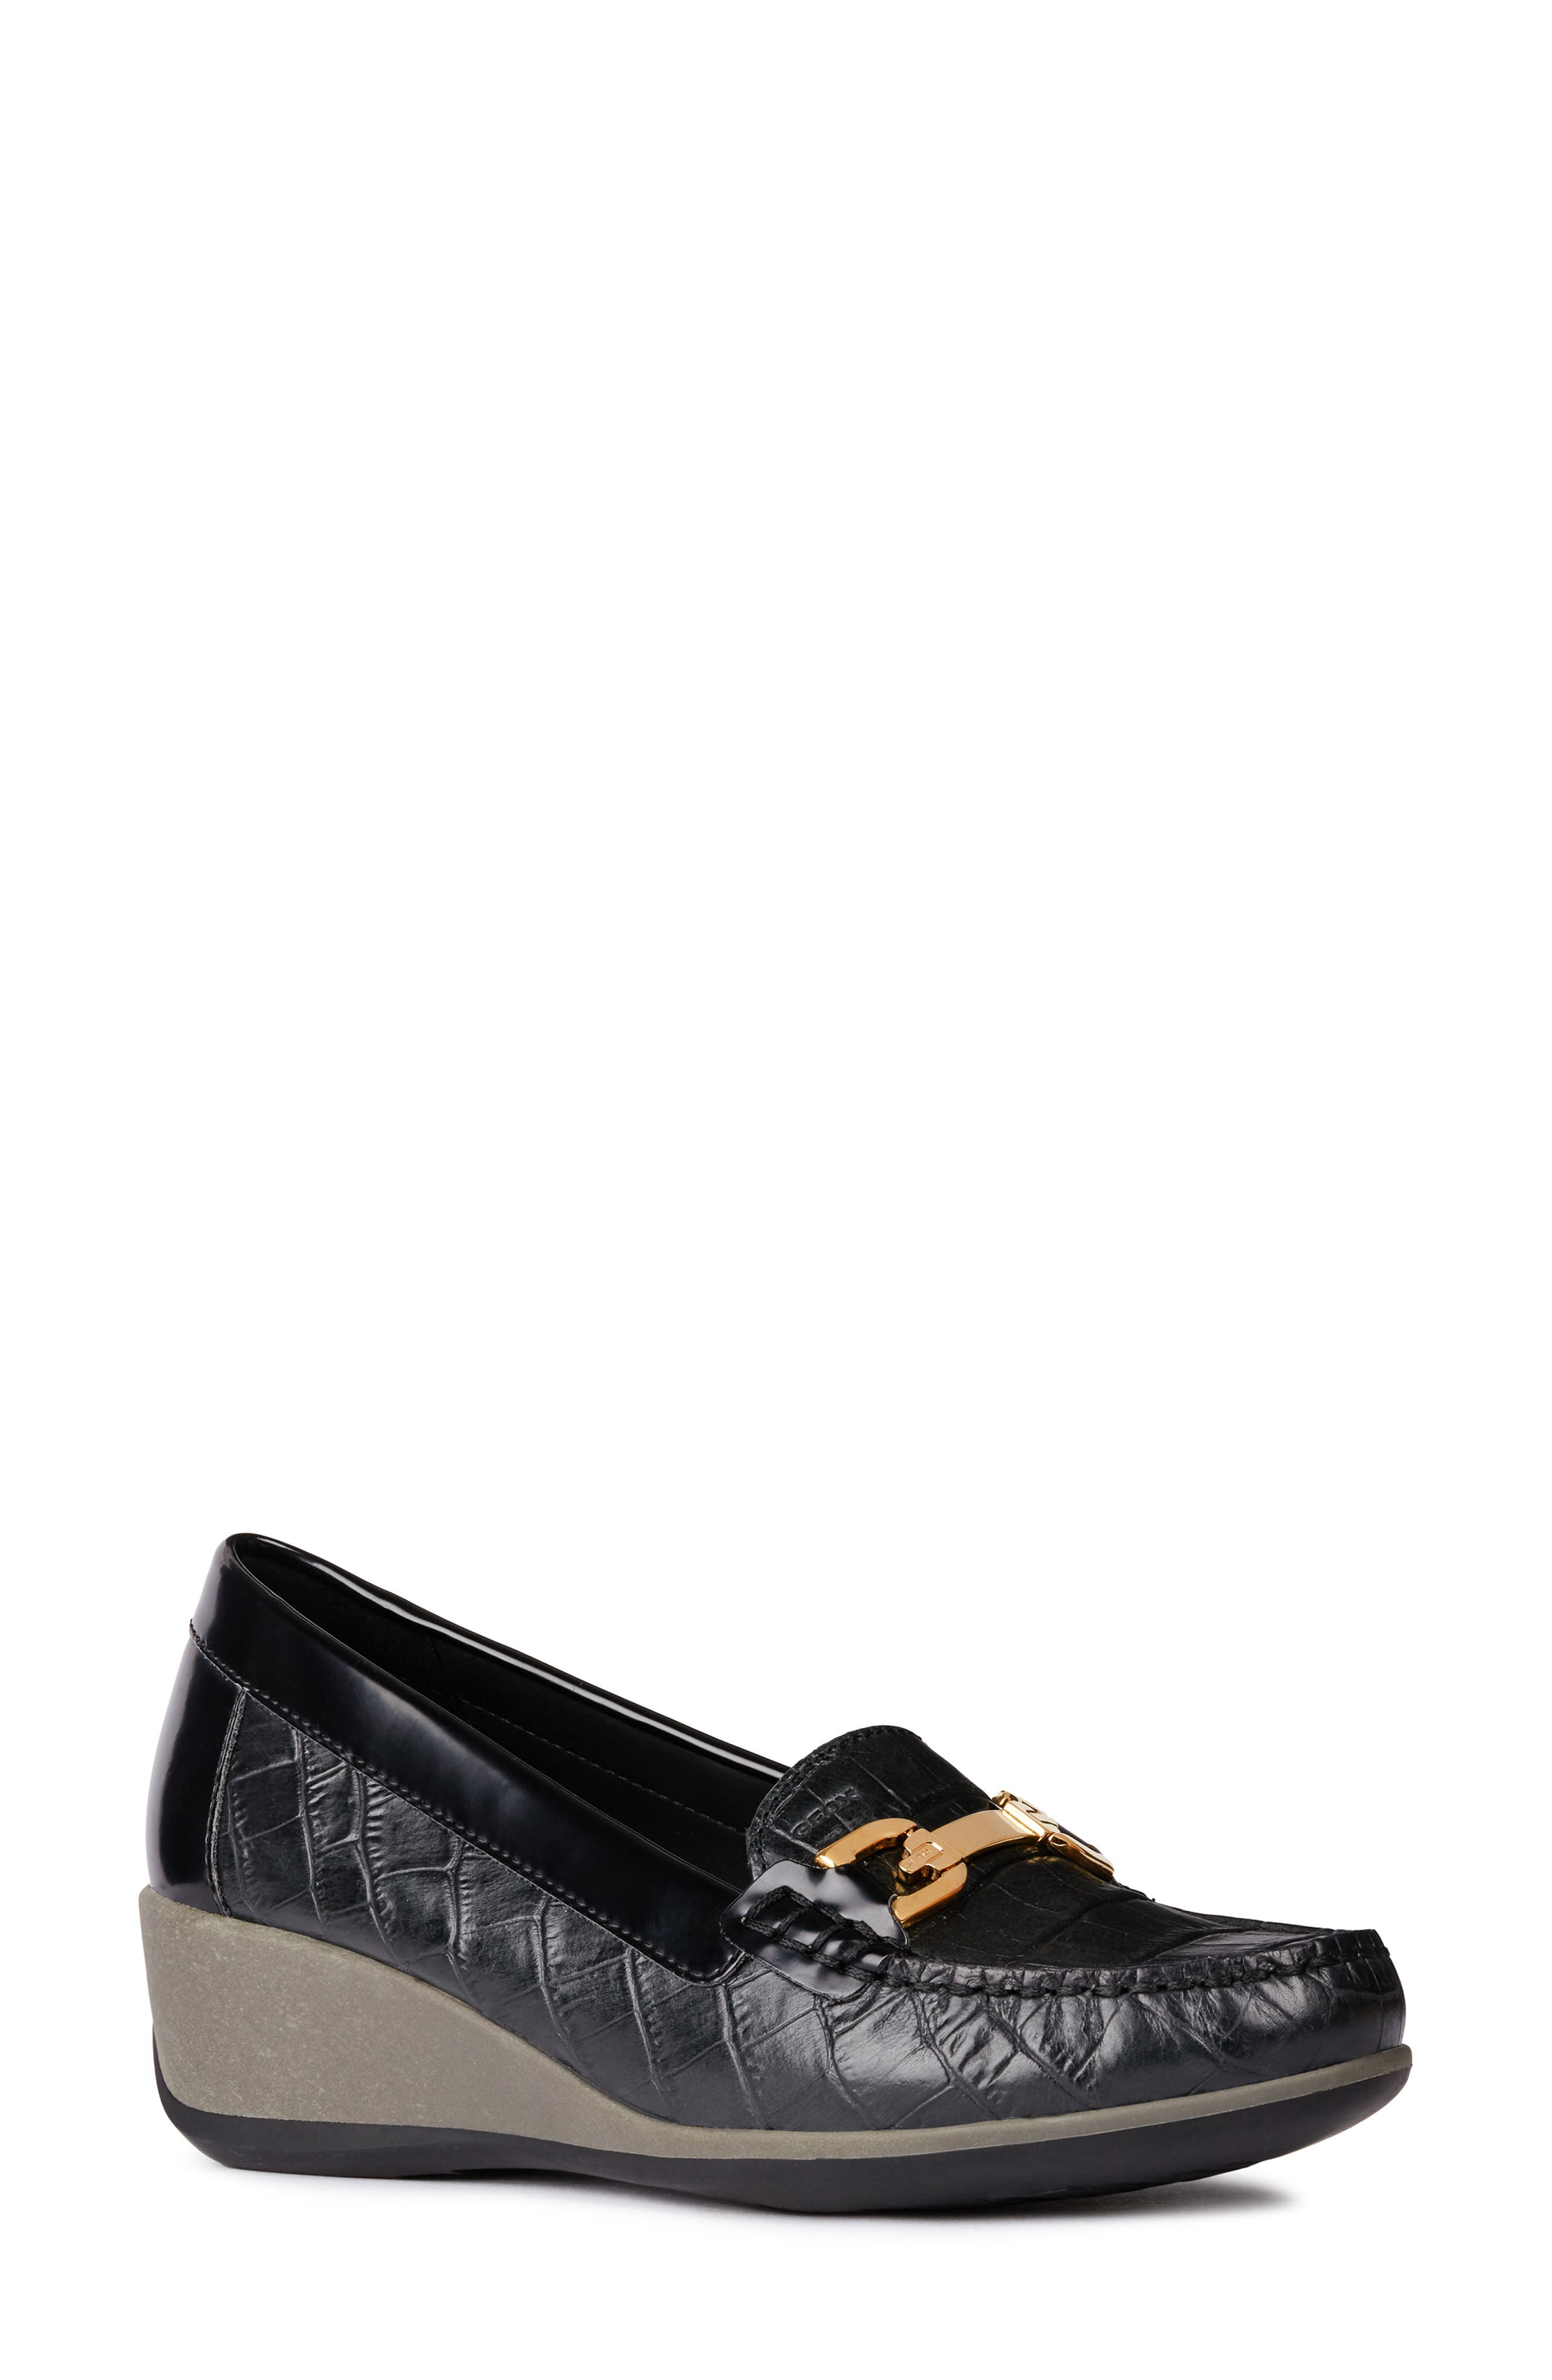 Arethea Loafer Wedge,                         Main,                         color, BLACK LEATHER